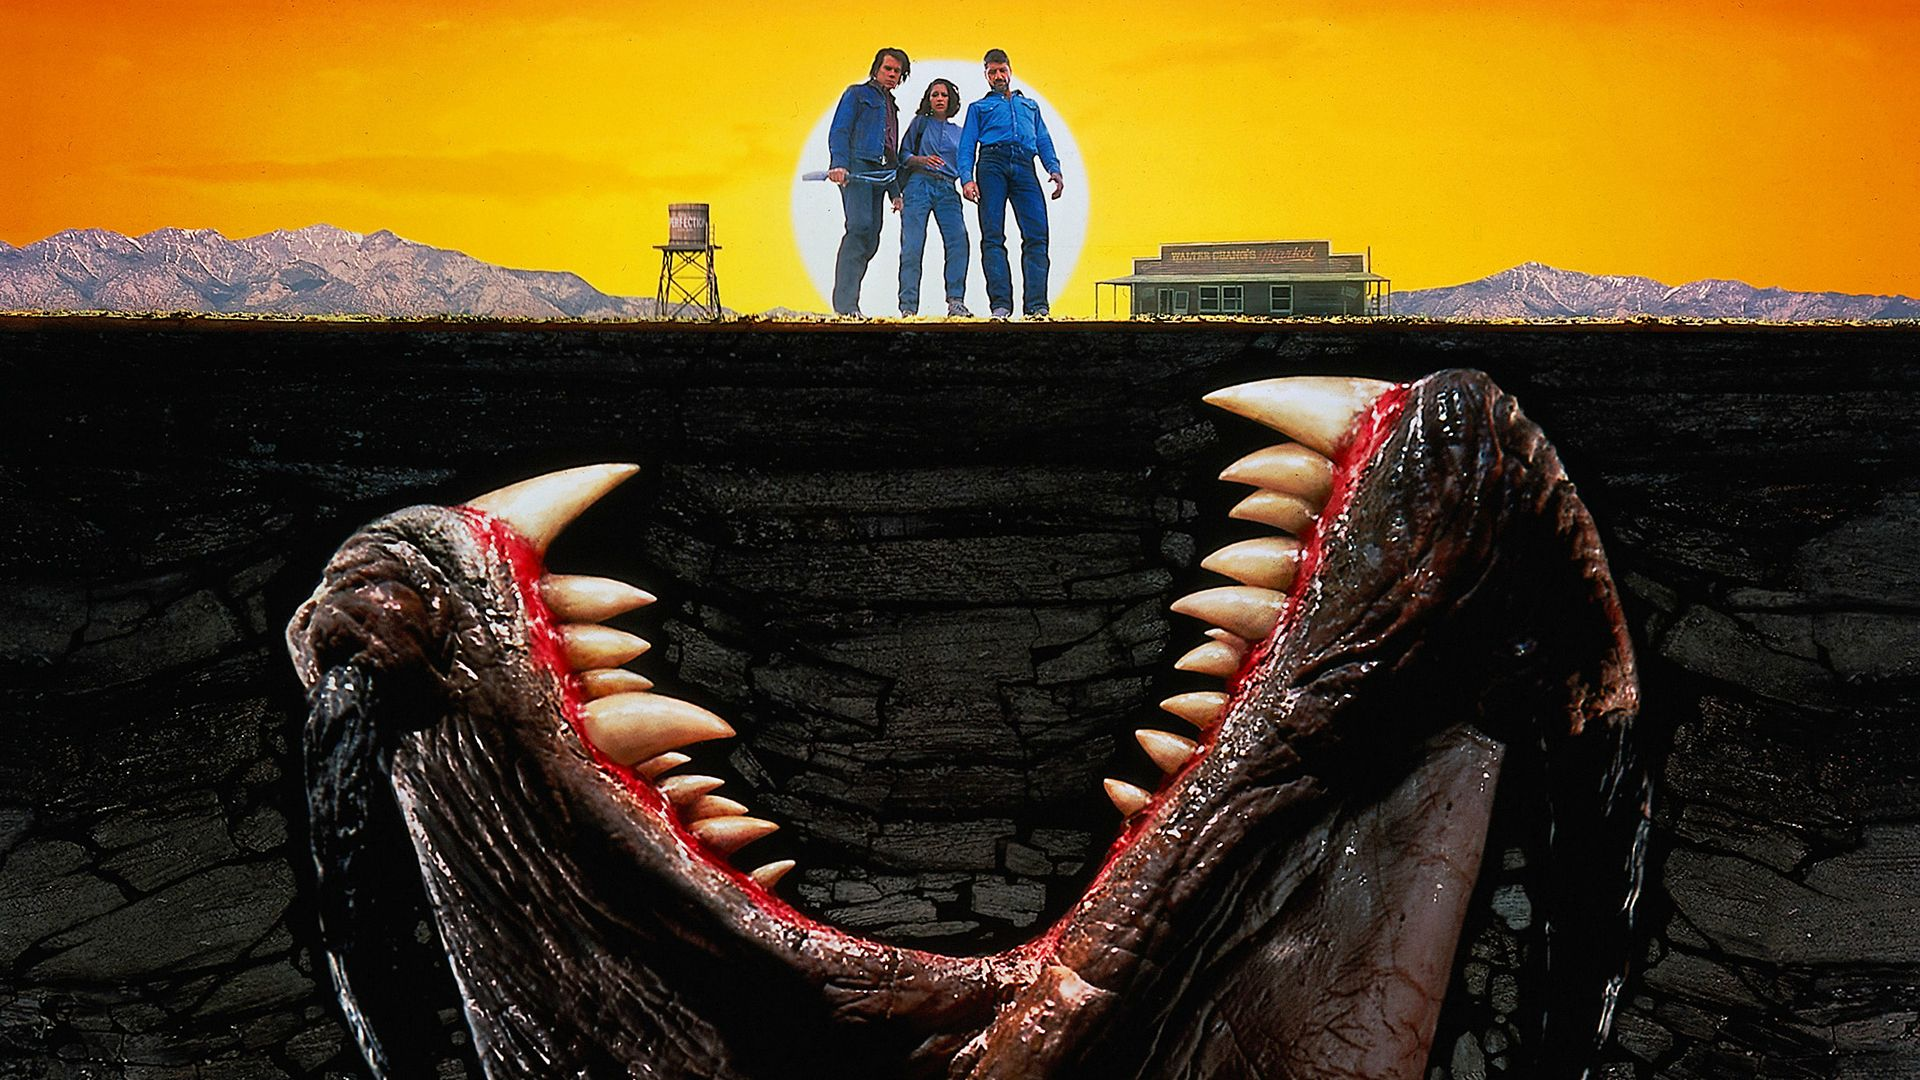 Best 58 Tremors Wallpaper on HipWallpaper Tremors Wallpaper 1920x1080